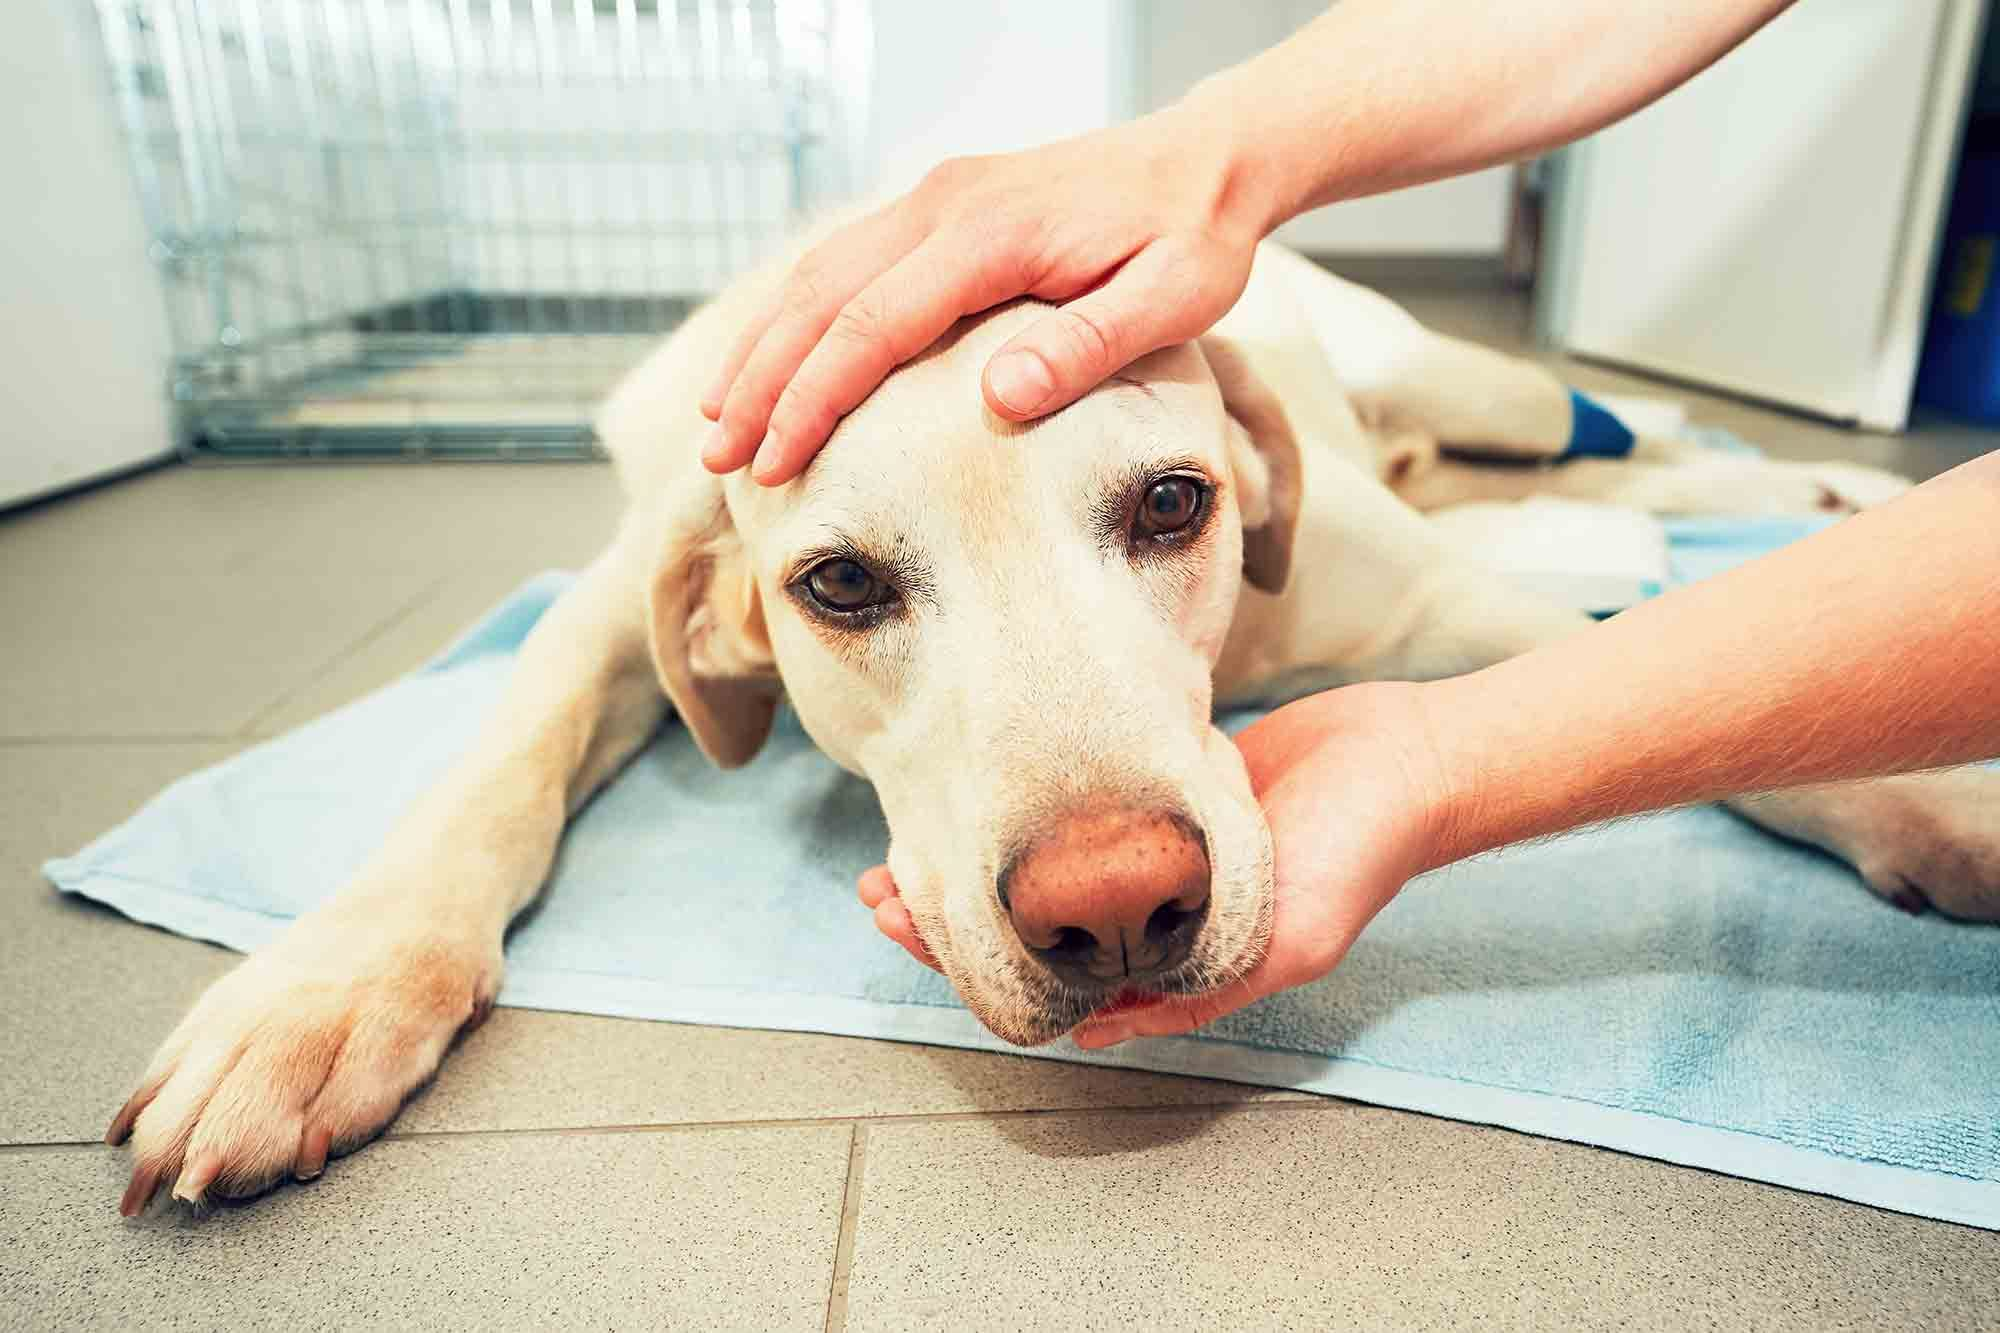 The dog flu is a serious threat to dog health